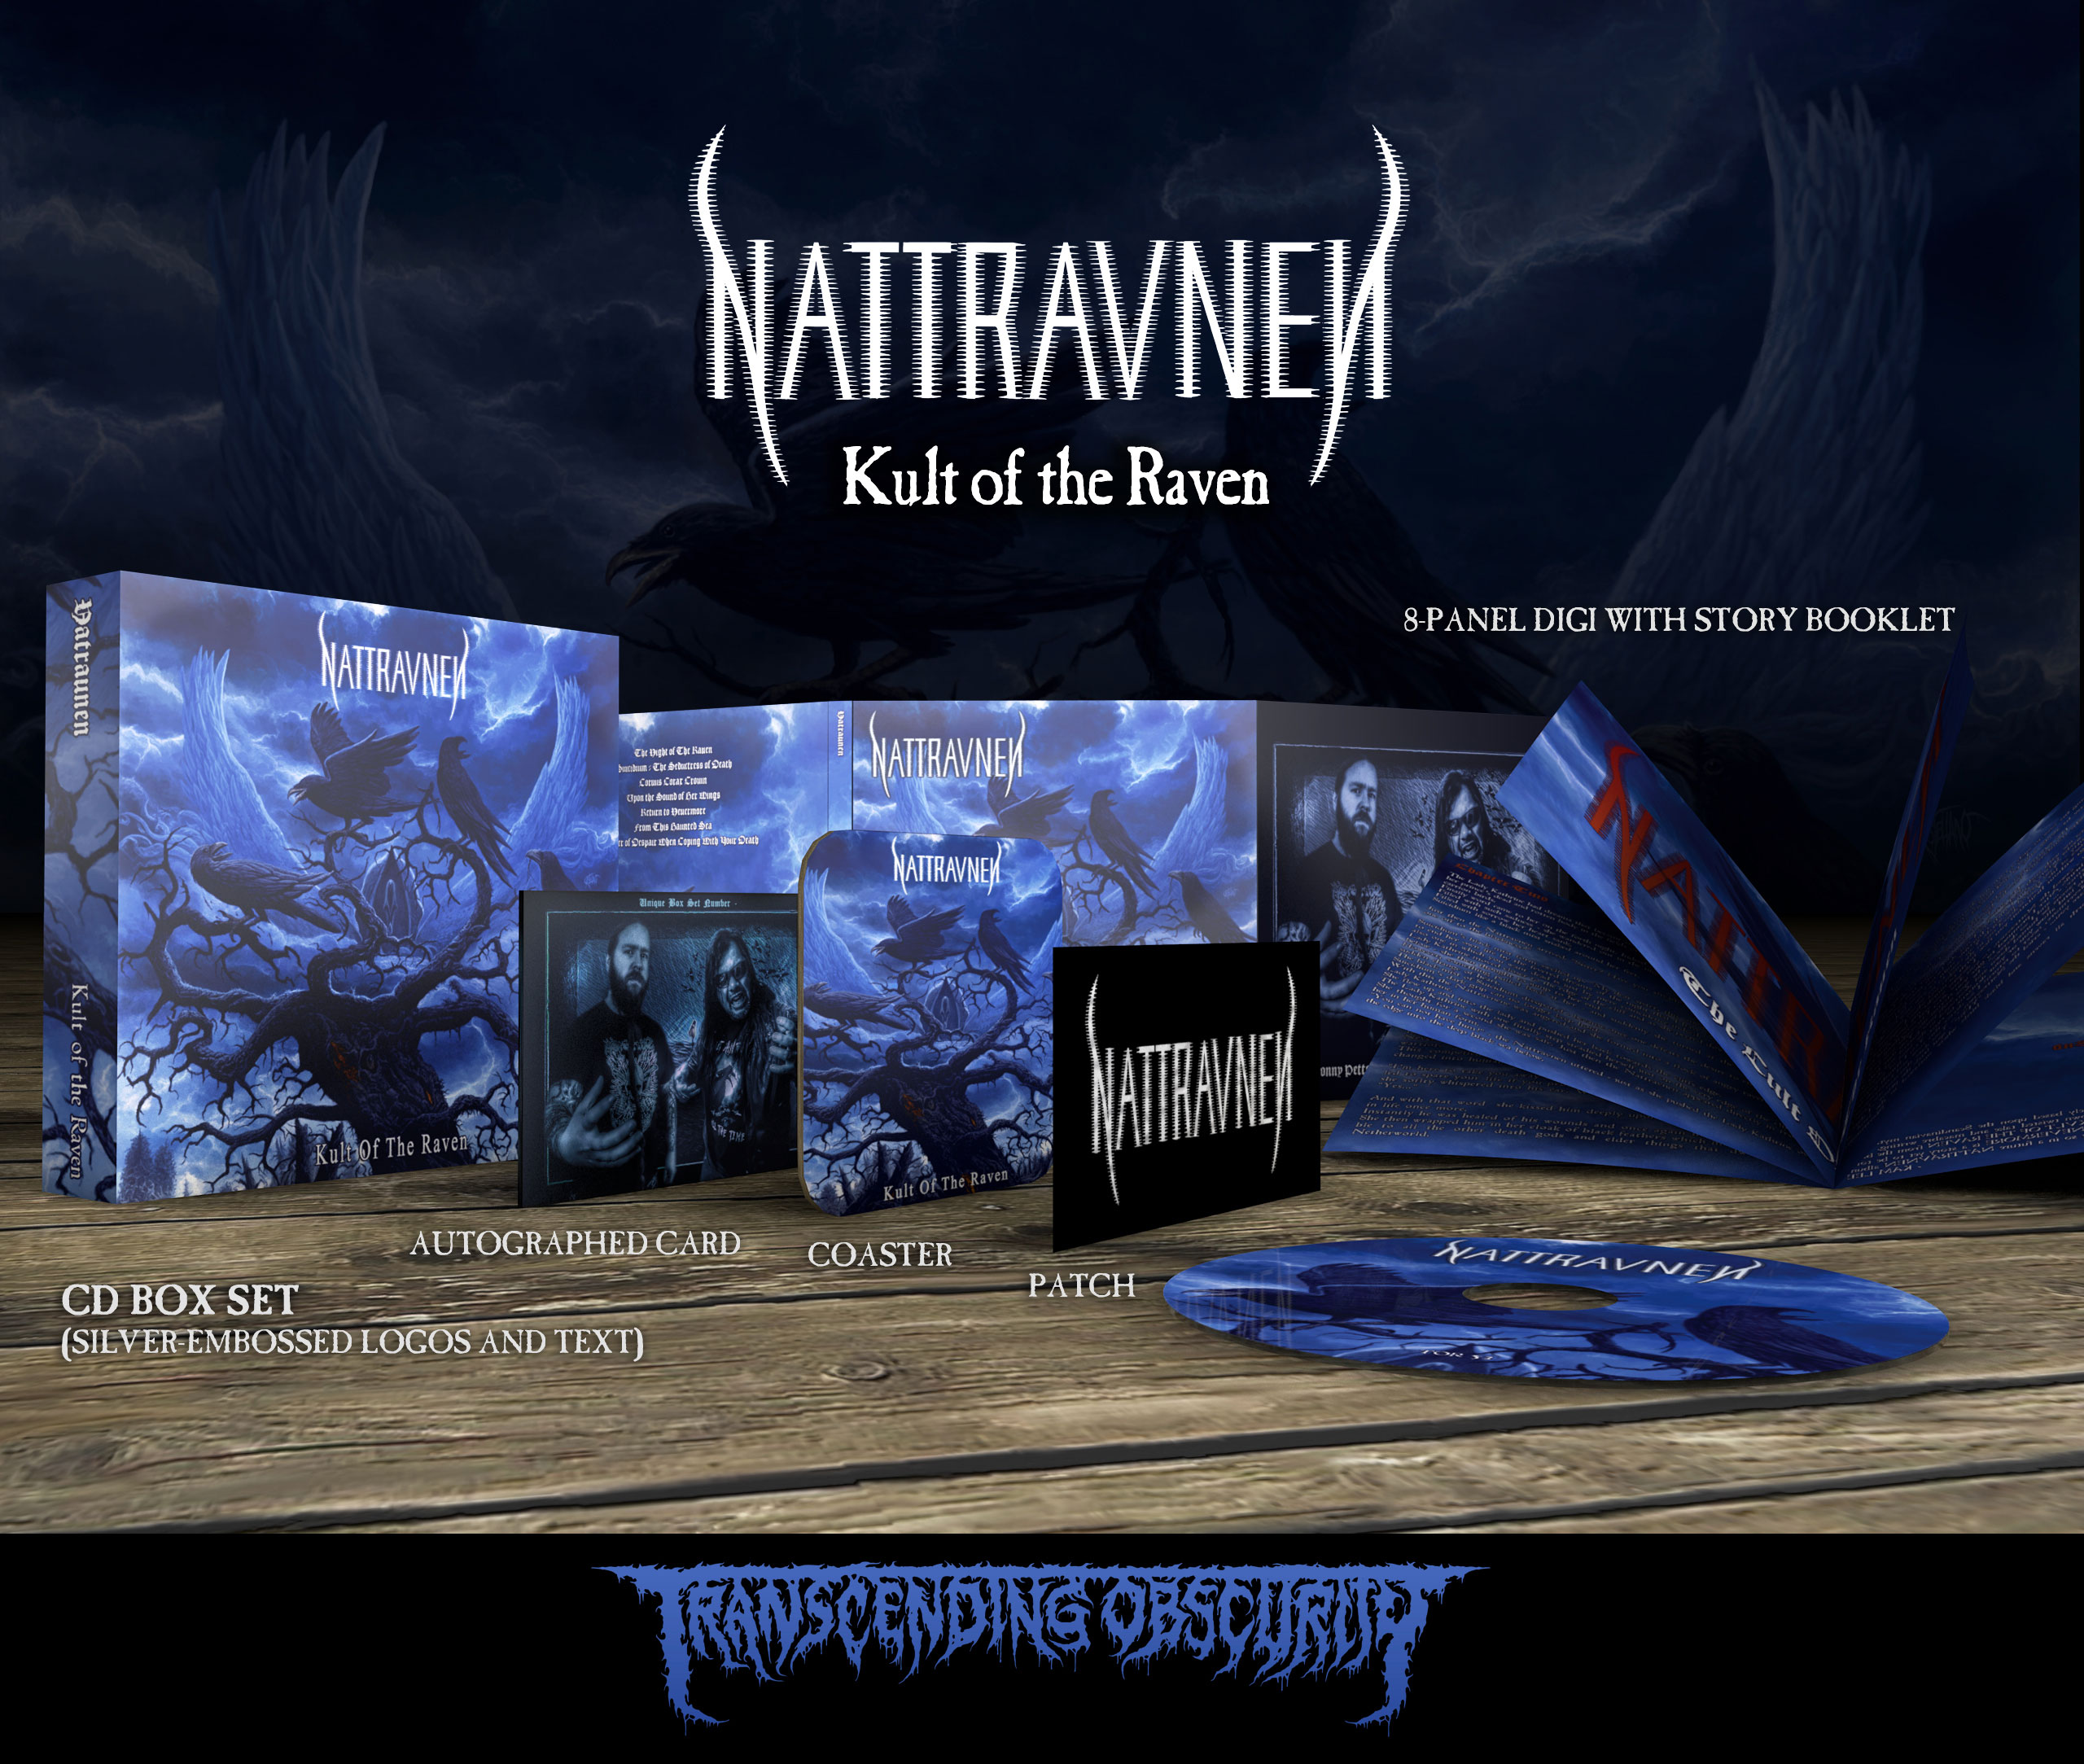 NATTRAVNEN (US/UK) - 'Kult of the Raven' Autographed CD Box Set (Limited to 150)